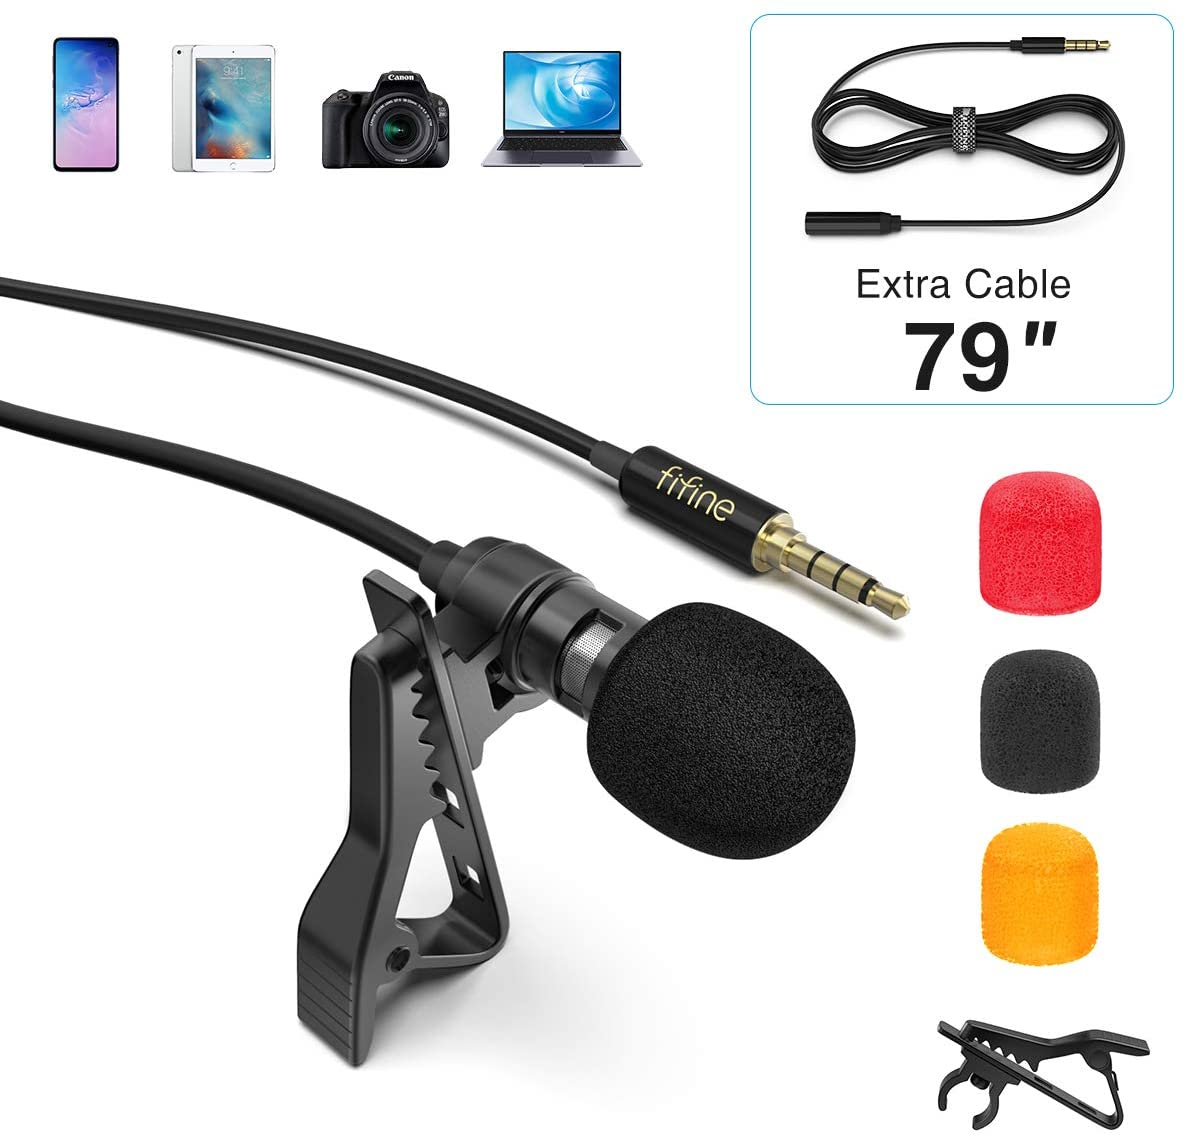 FIFINE Lavalier Lapel Microphone for iPhone Smartphone PC Computer, Mini Clip-on 3.5mm Condenser Mic Kit for Recording YouTube Video Vlog Podcast ASMR Zoom, 79 Inch Extension Cord, Omnidirectional-C2A